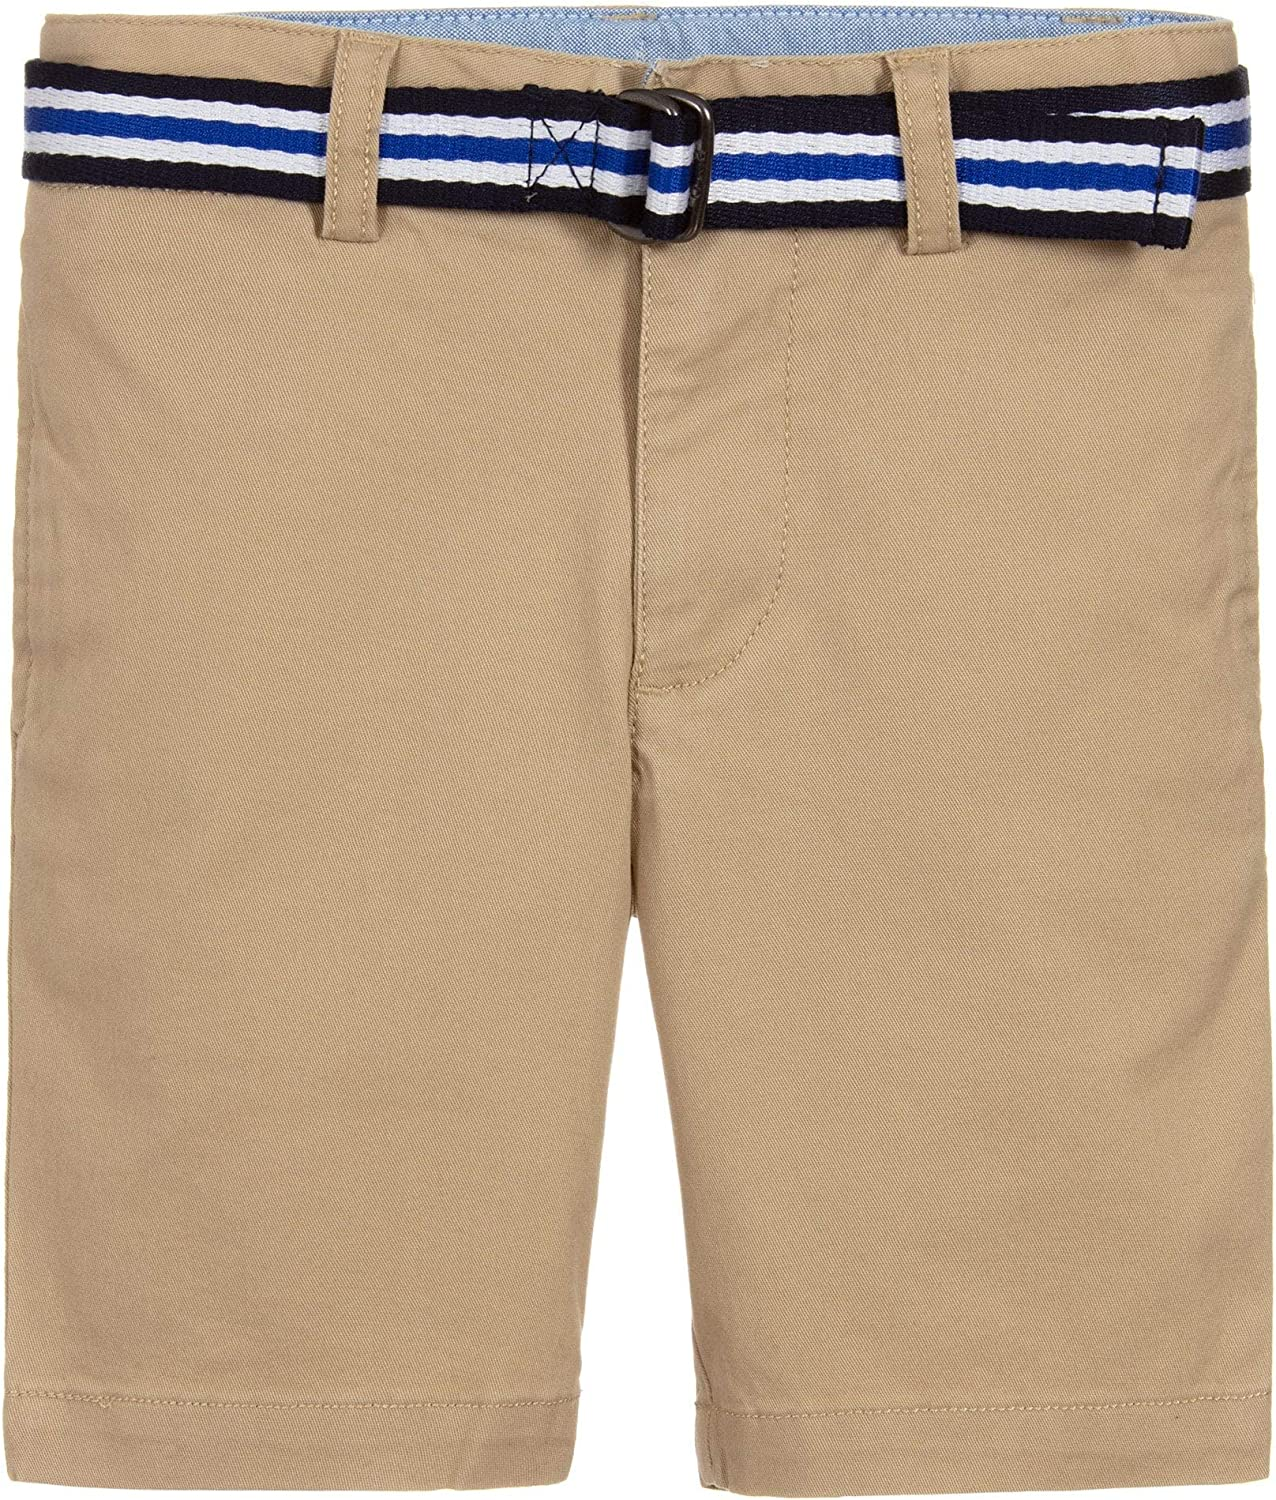 Polo Ralph Lauren Polo Ralph Laurent Belted Short-BT-SHO - Bermuda ...